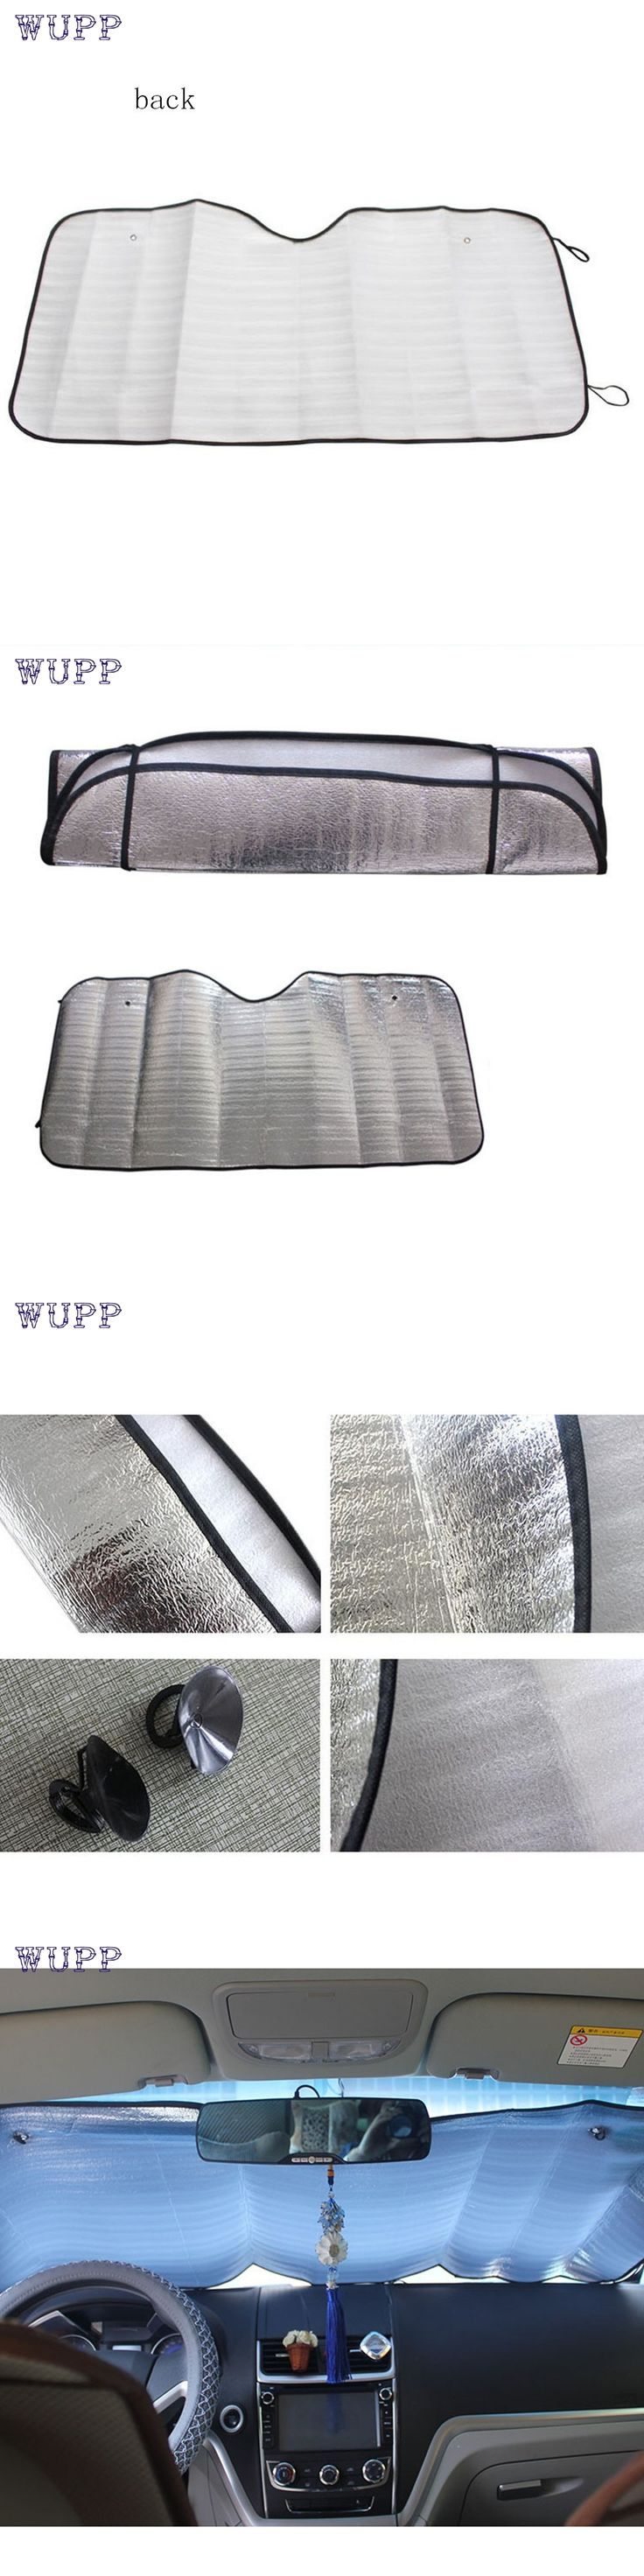 wupp Top Quality car-styling 1Pc Casual Foldable Car Windshield Visor Cover Front Rear Block Window Sun Shade Jun.27